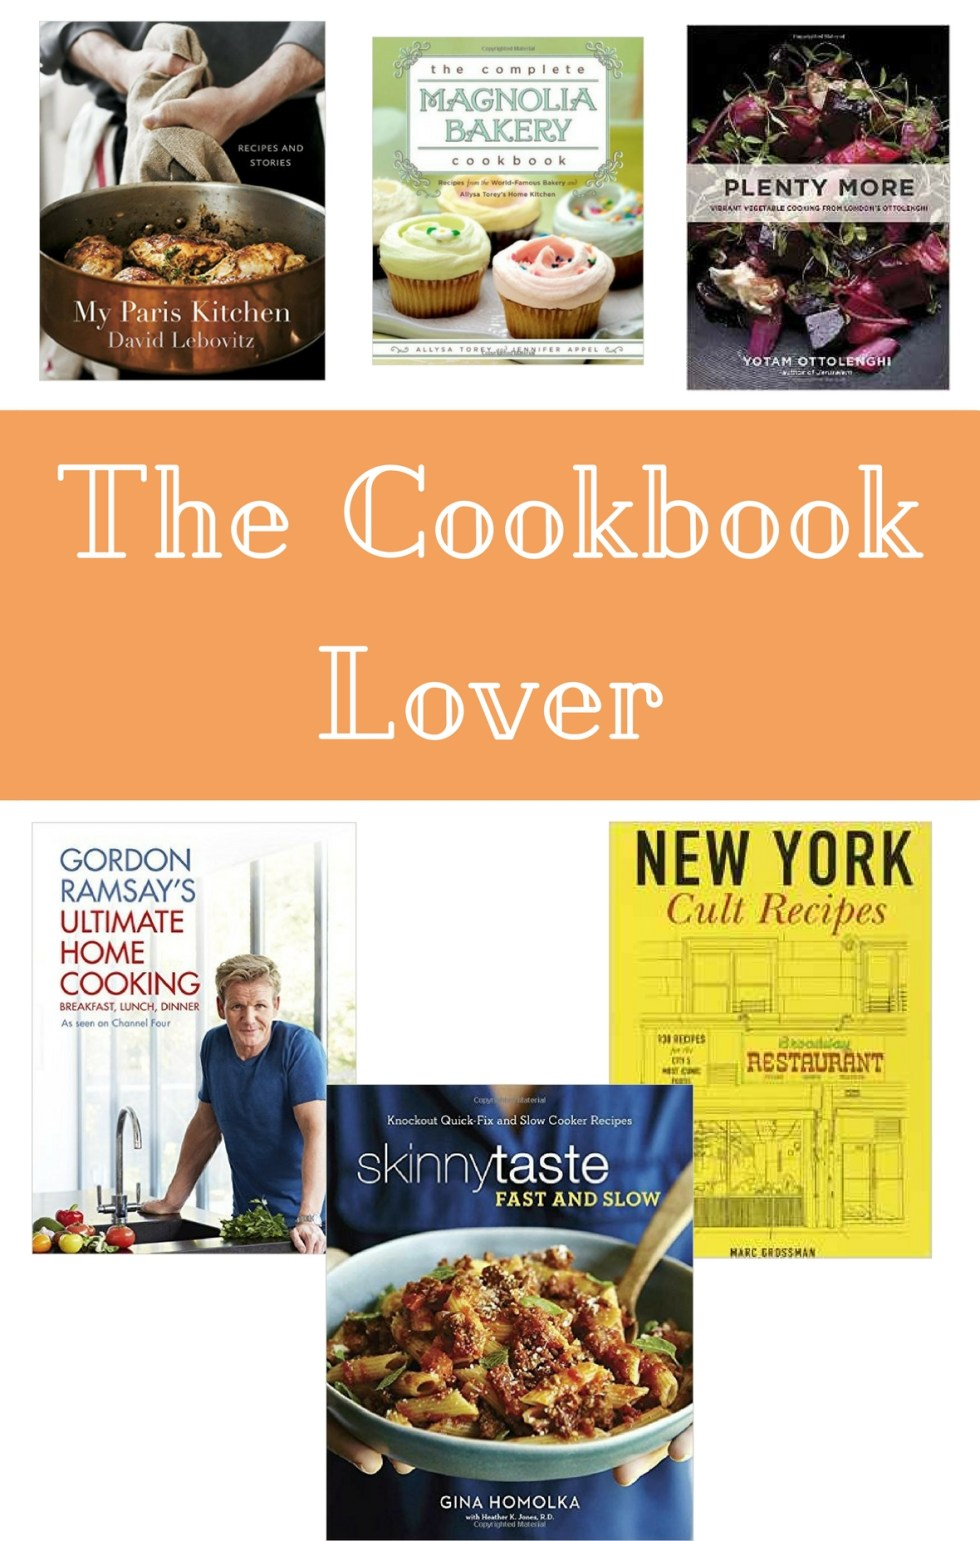 Parisian holiday shopping guide. THE COOKBOOK LOVER. A Hedgehog in the Kitchen. www.ahedgehoginthekitchen.com.